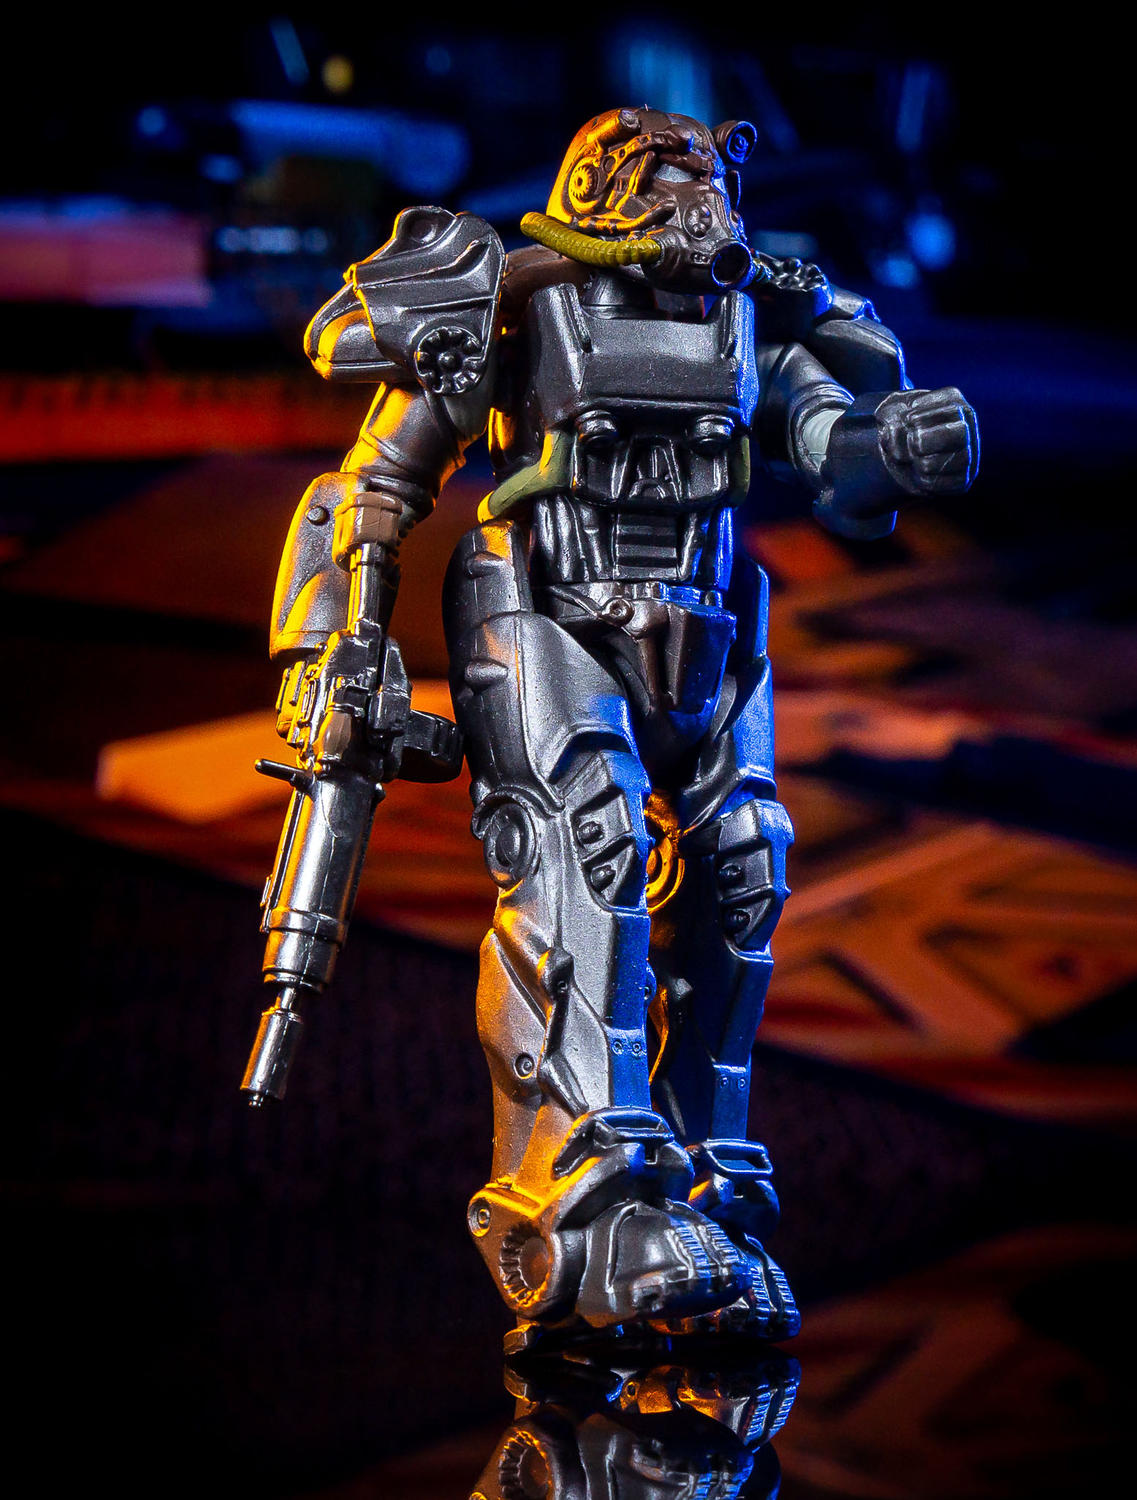 Glyos Compatible Fallout Video Game Figures-dsc07088.jpg